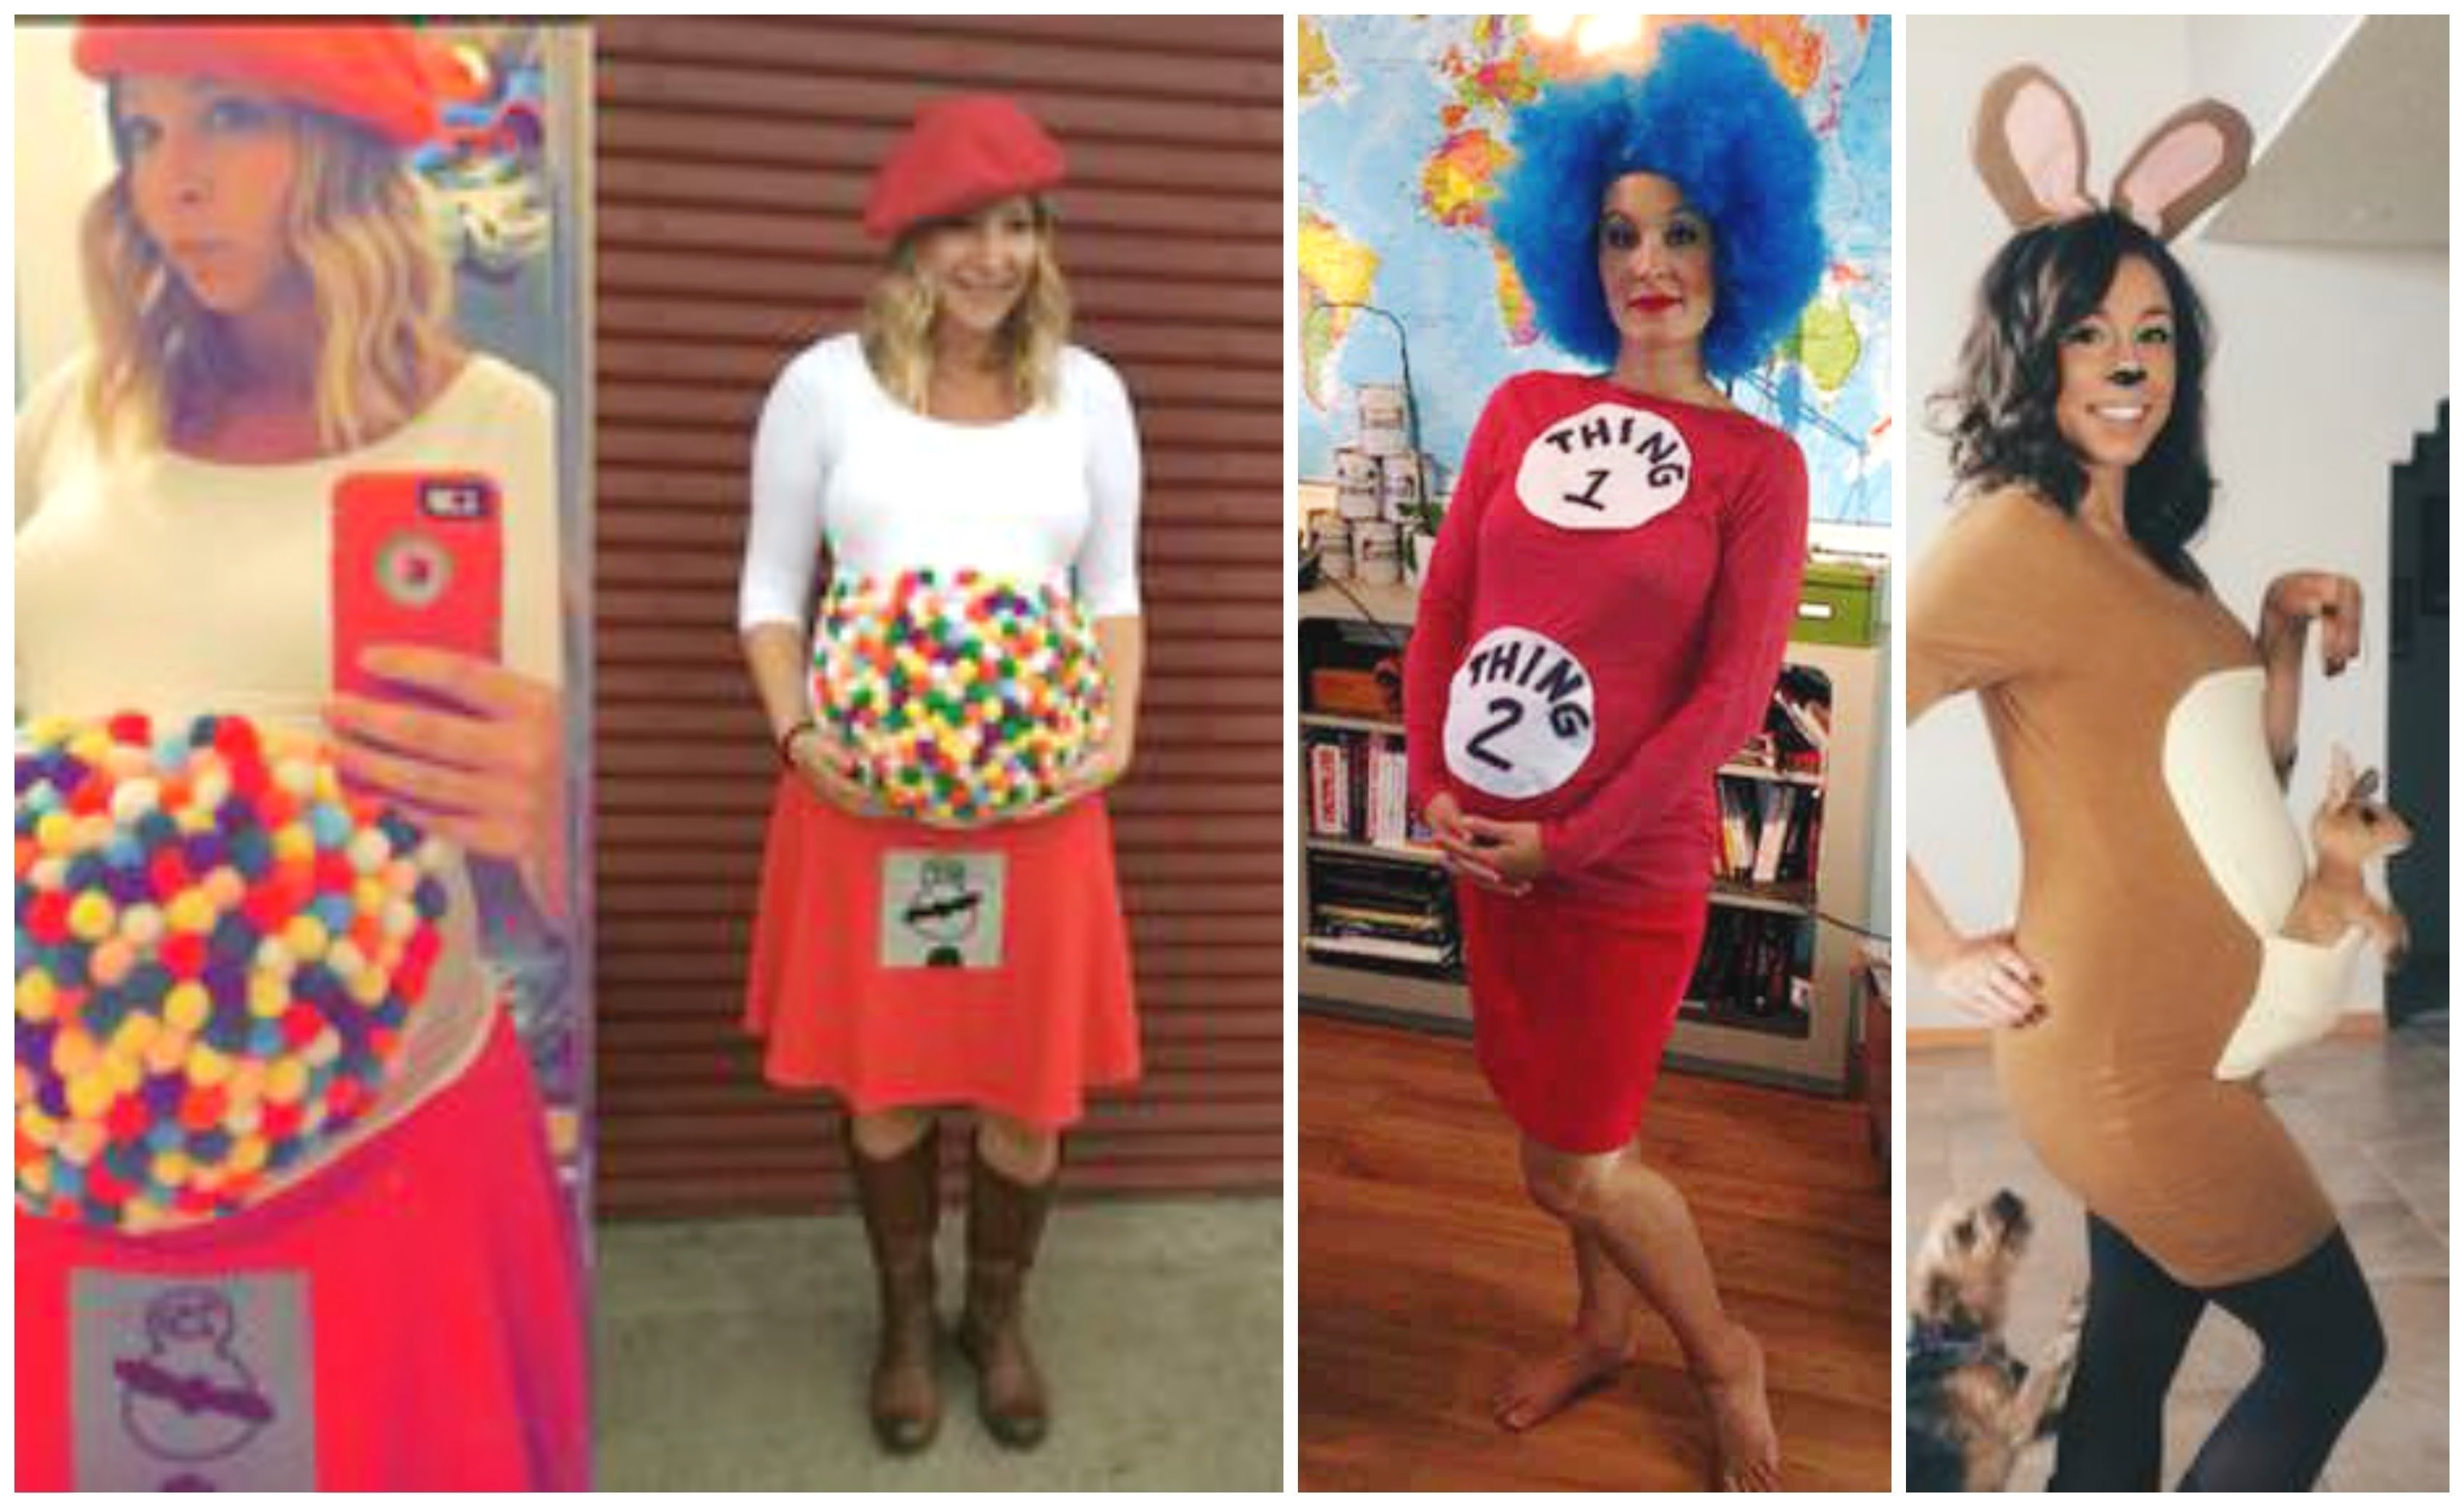 10 Lovable Unique Women Halloween Costume Ideas creative maternity halloween costume ideas costume ideas for 1 2021